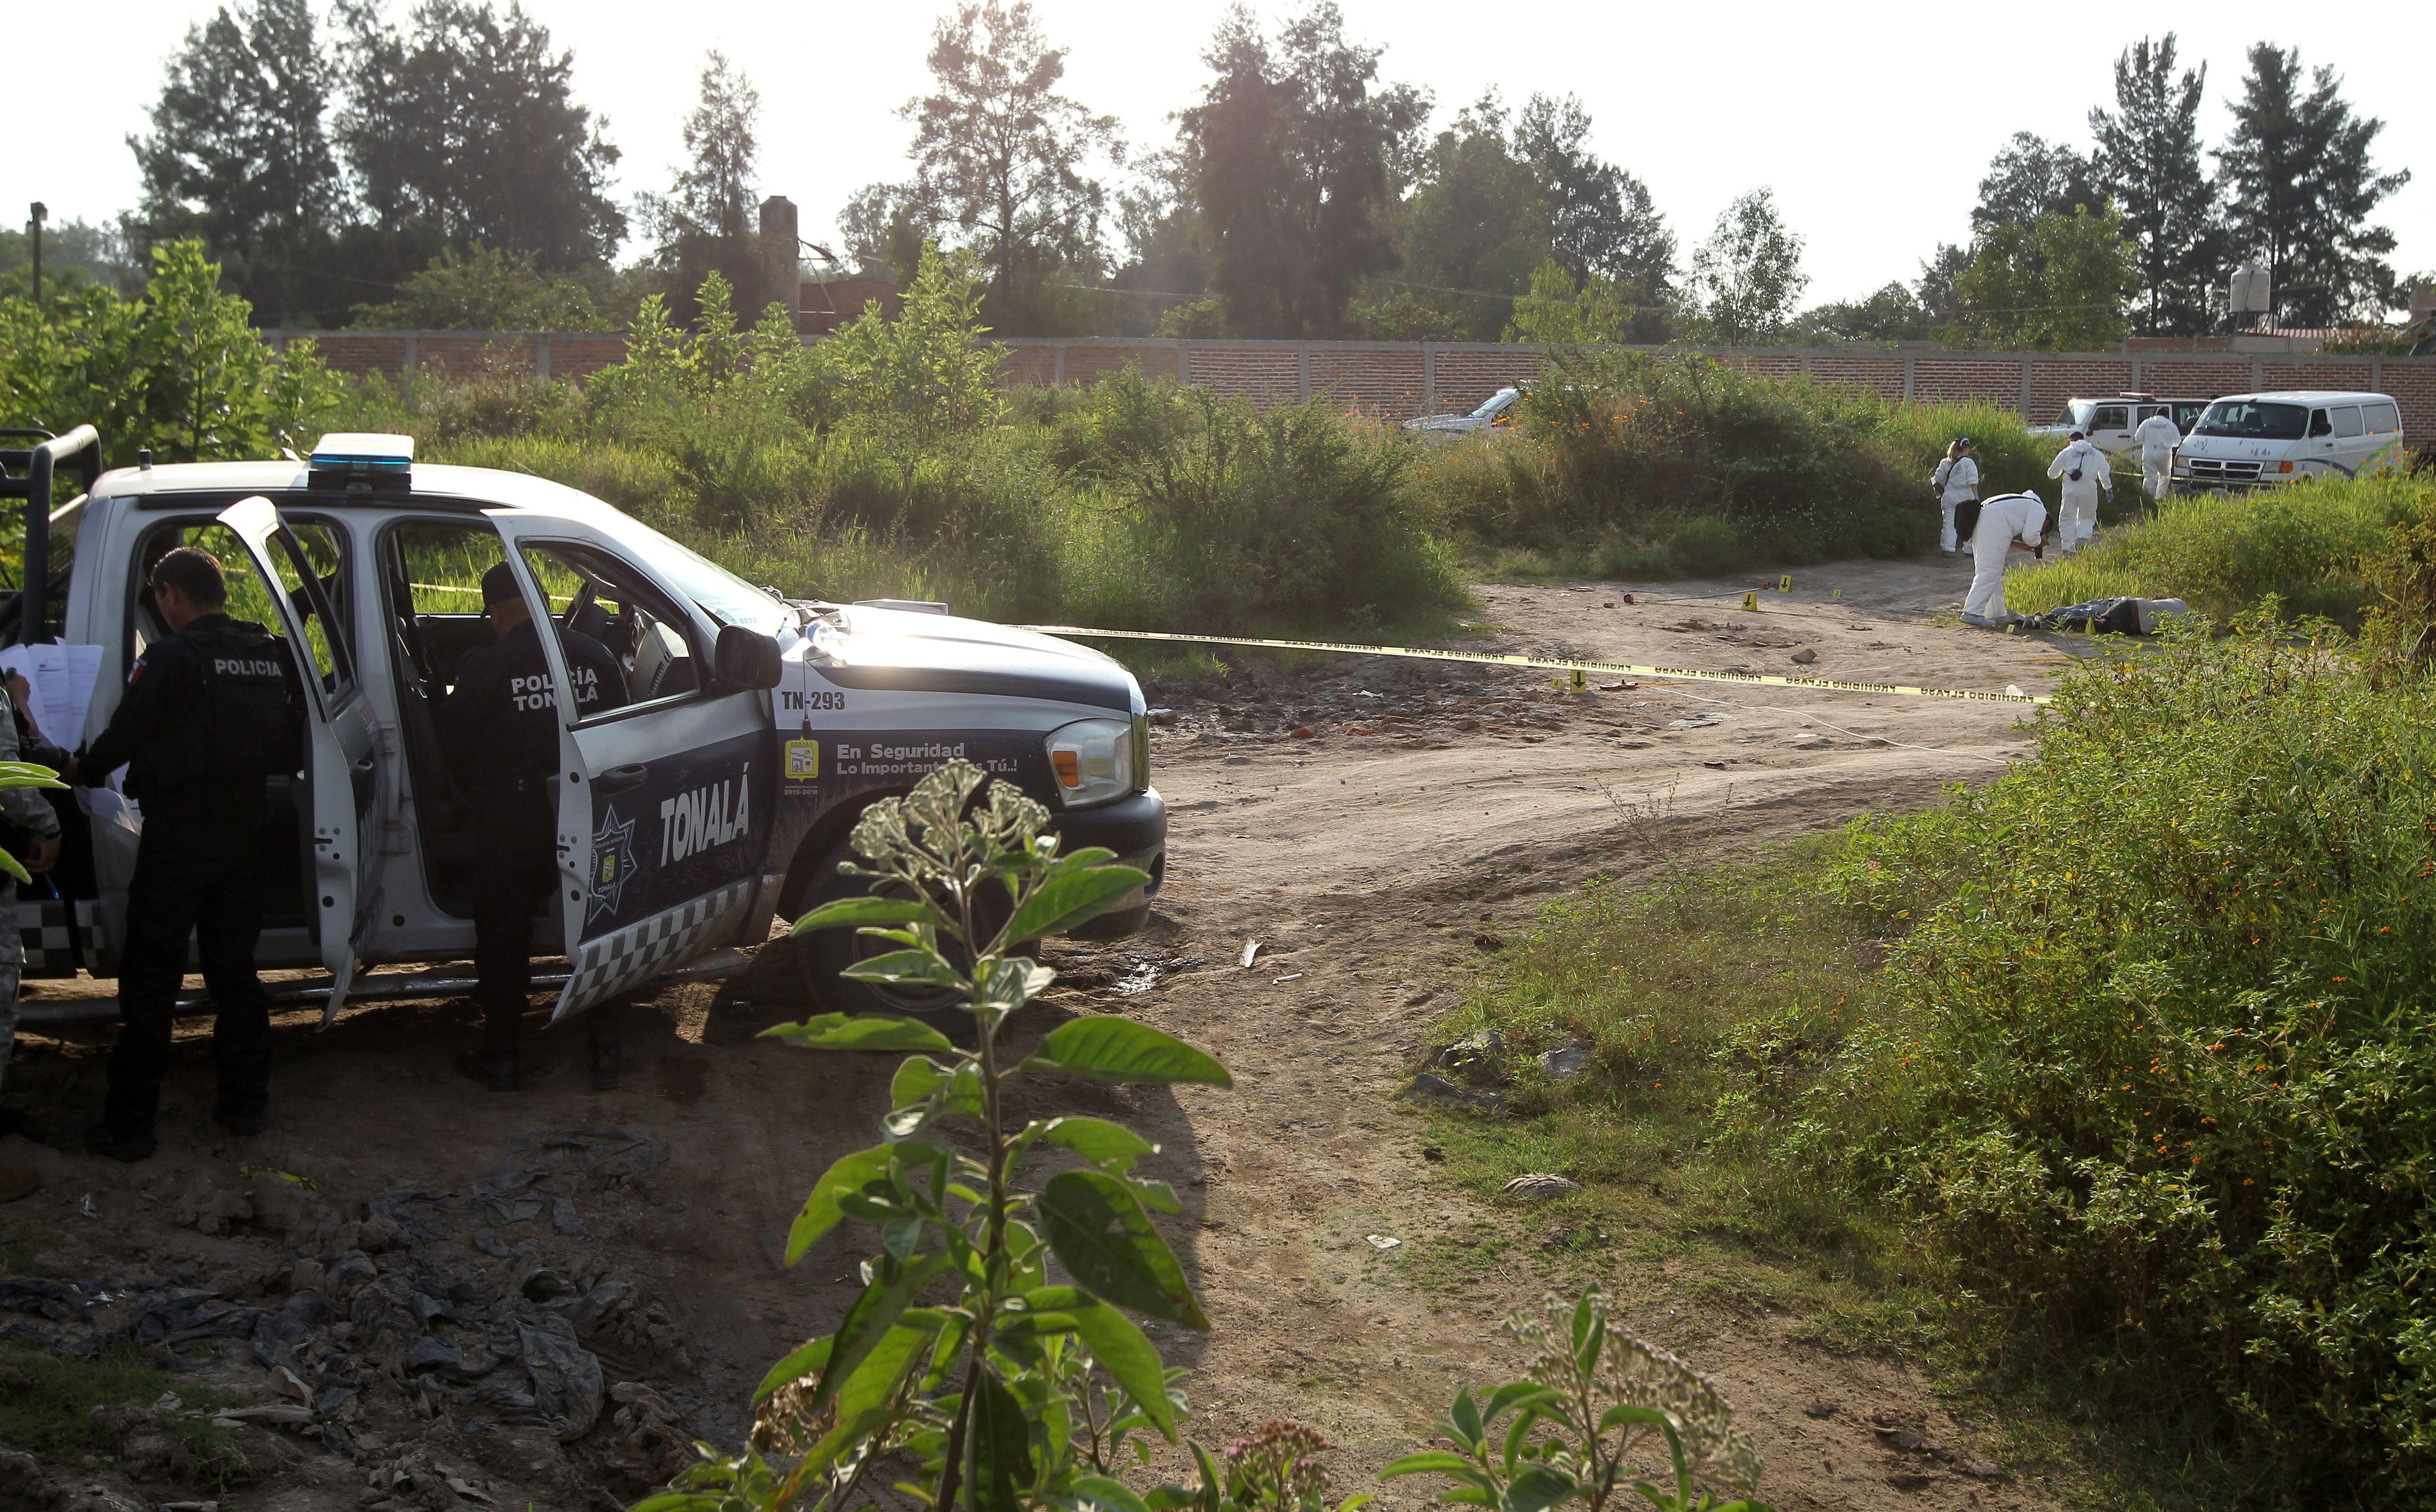 Forensic personnel work at a crime scene in Tonala, Mexico on Oct. 13, 2018.